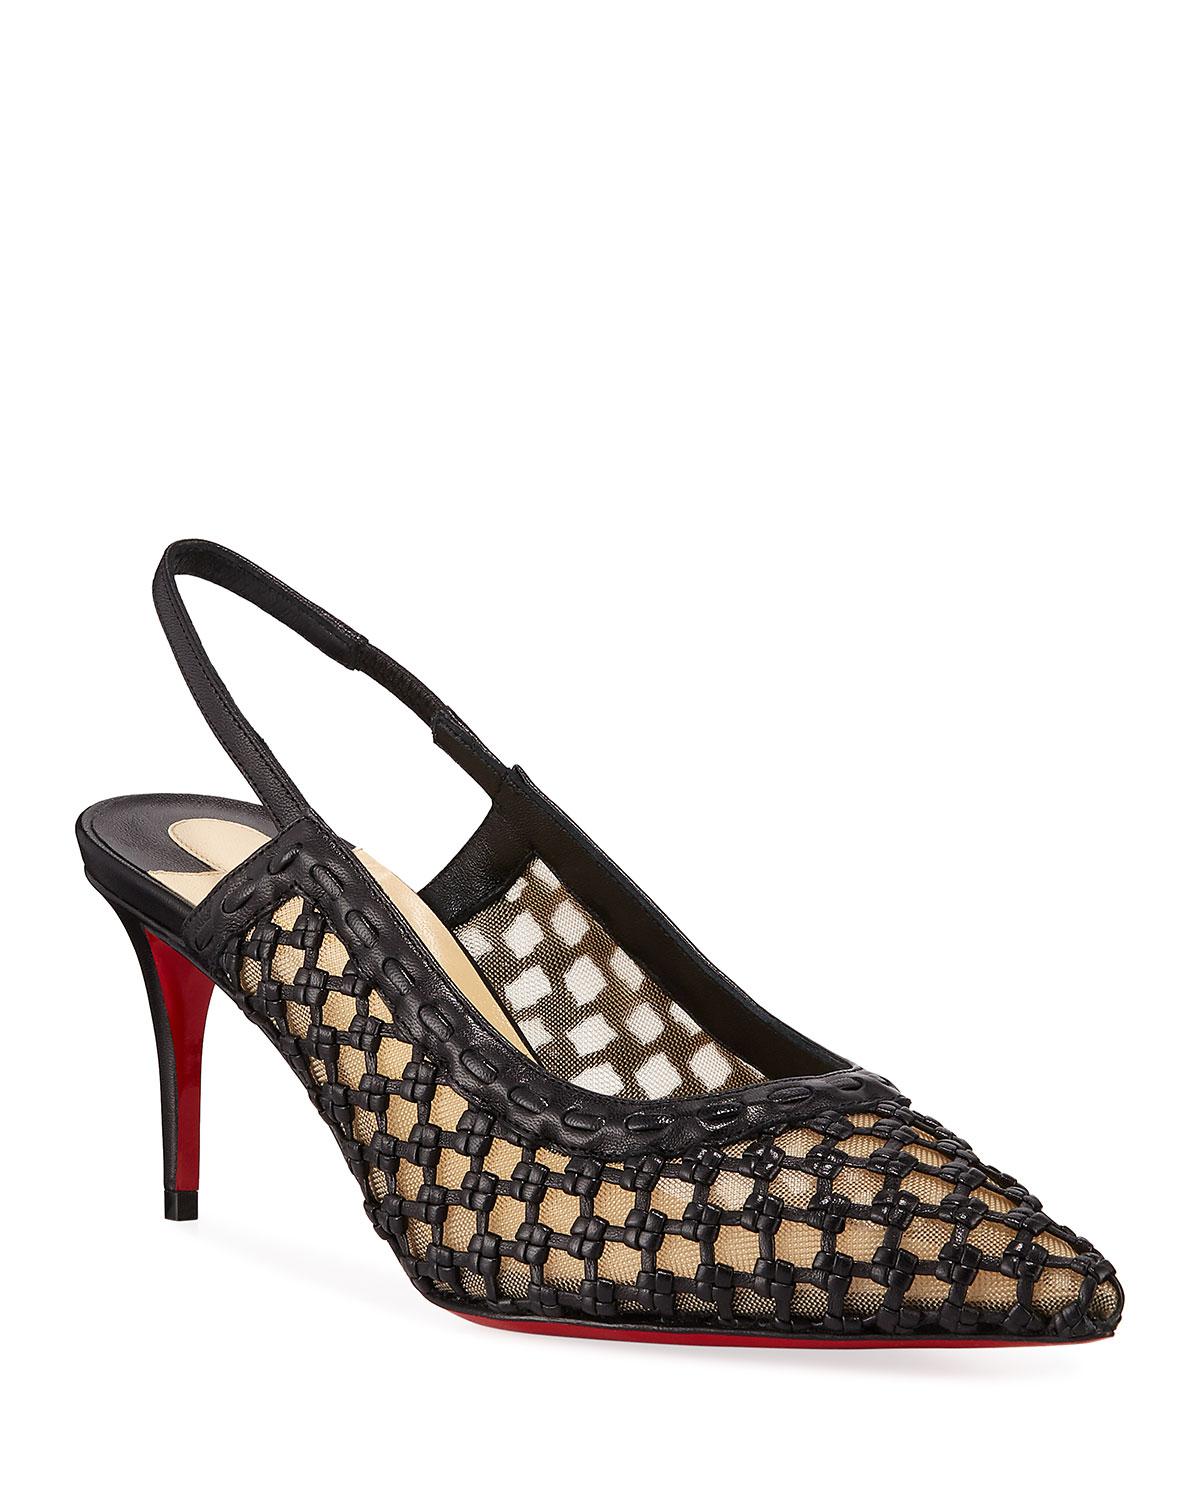 Cage Slingback Red Sole Pumps